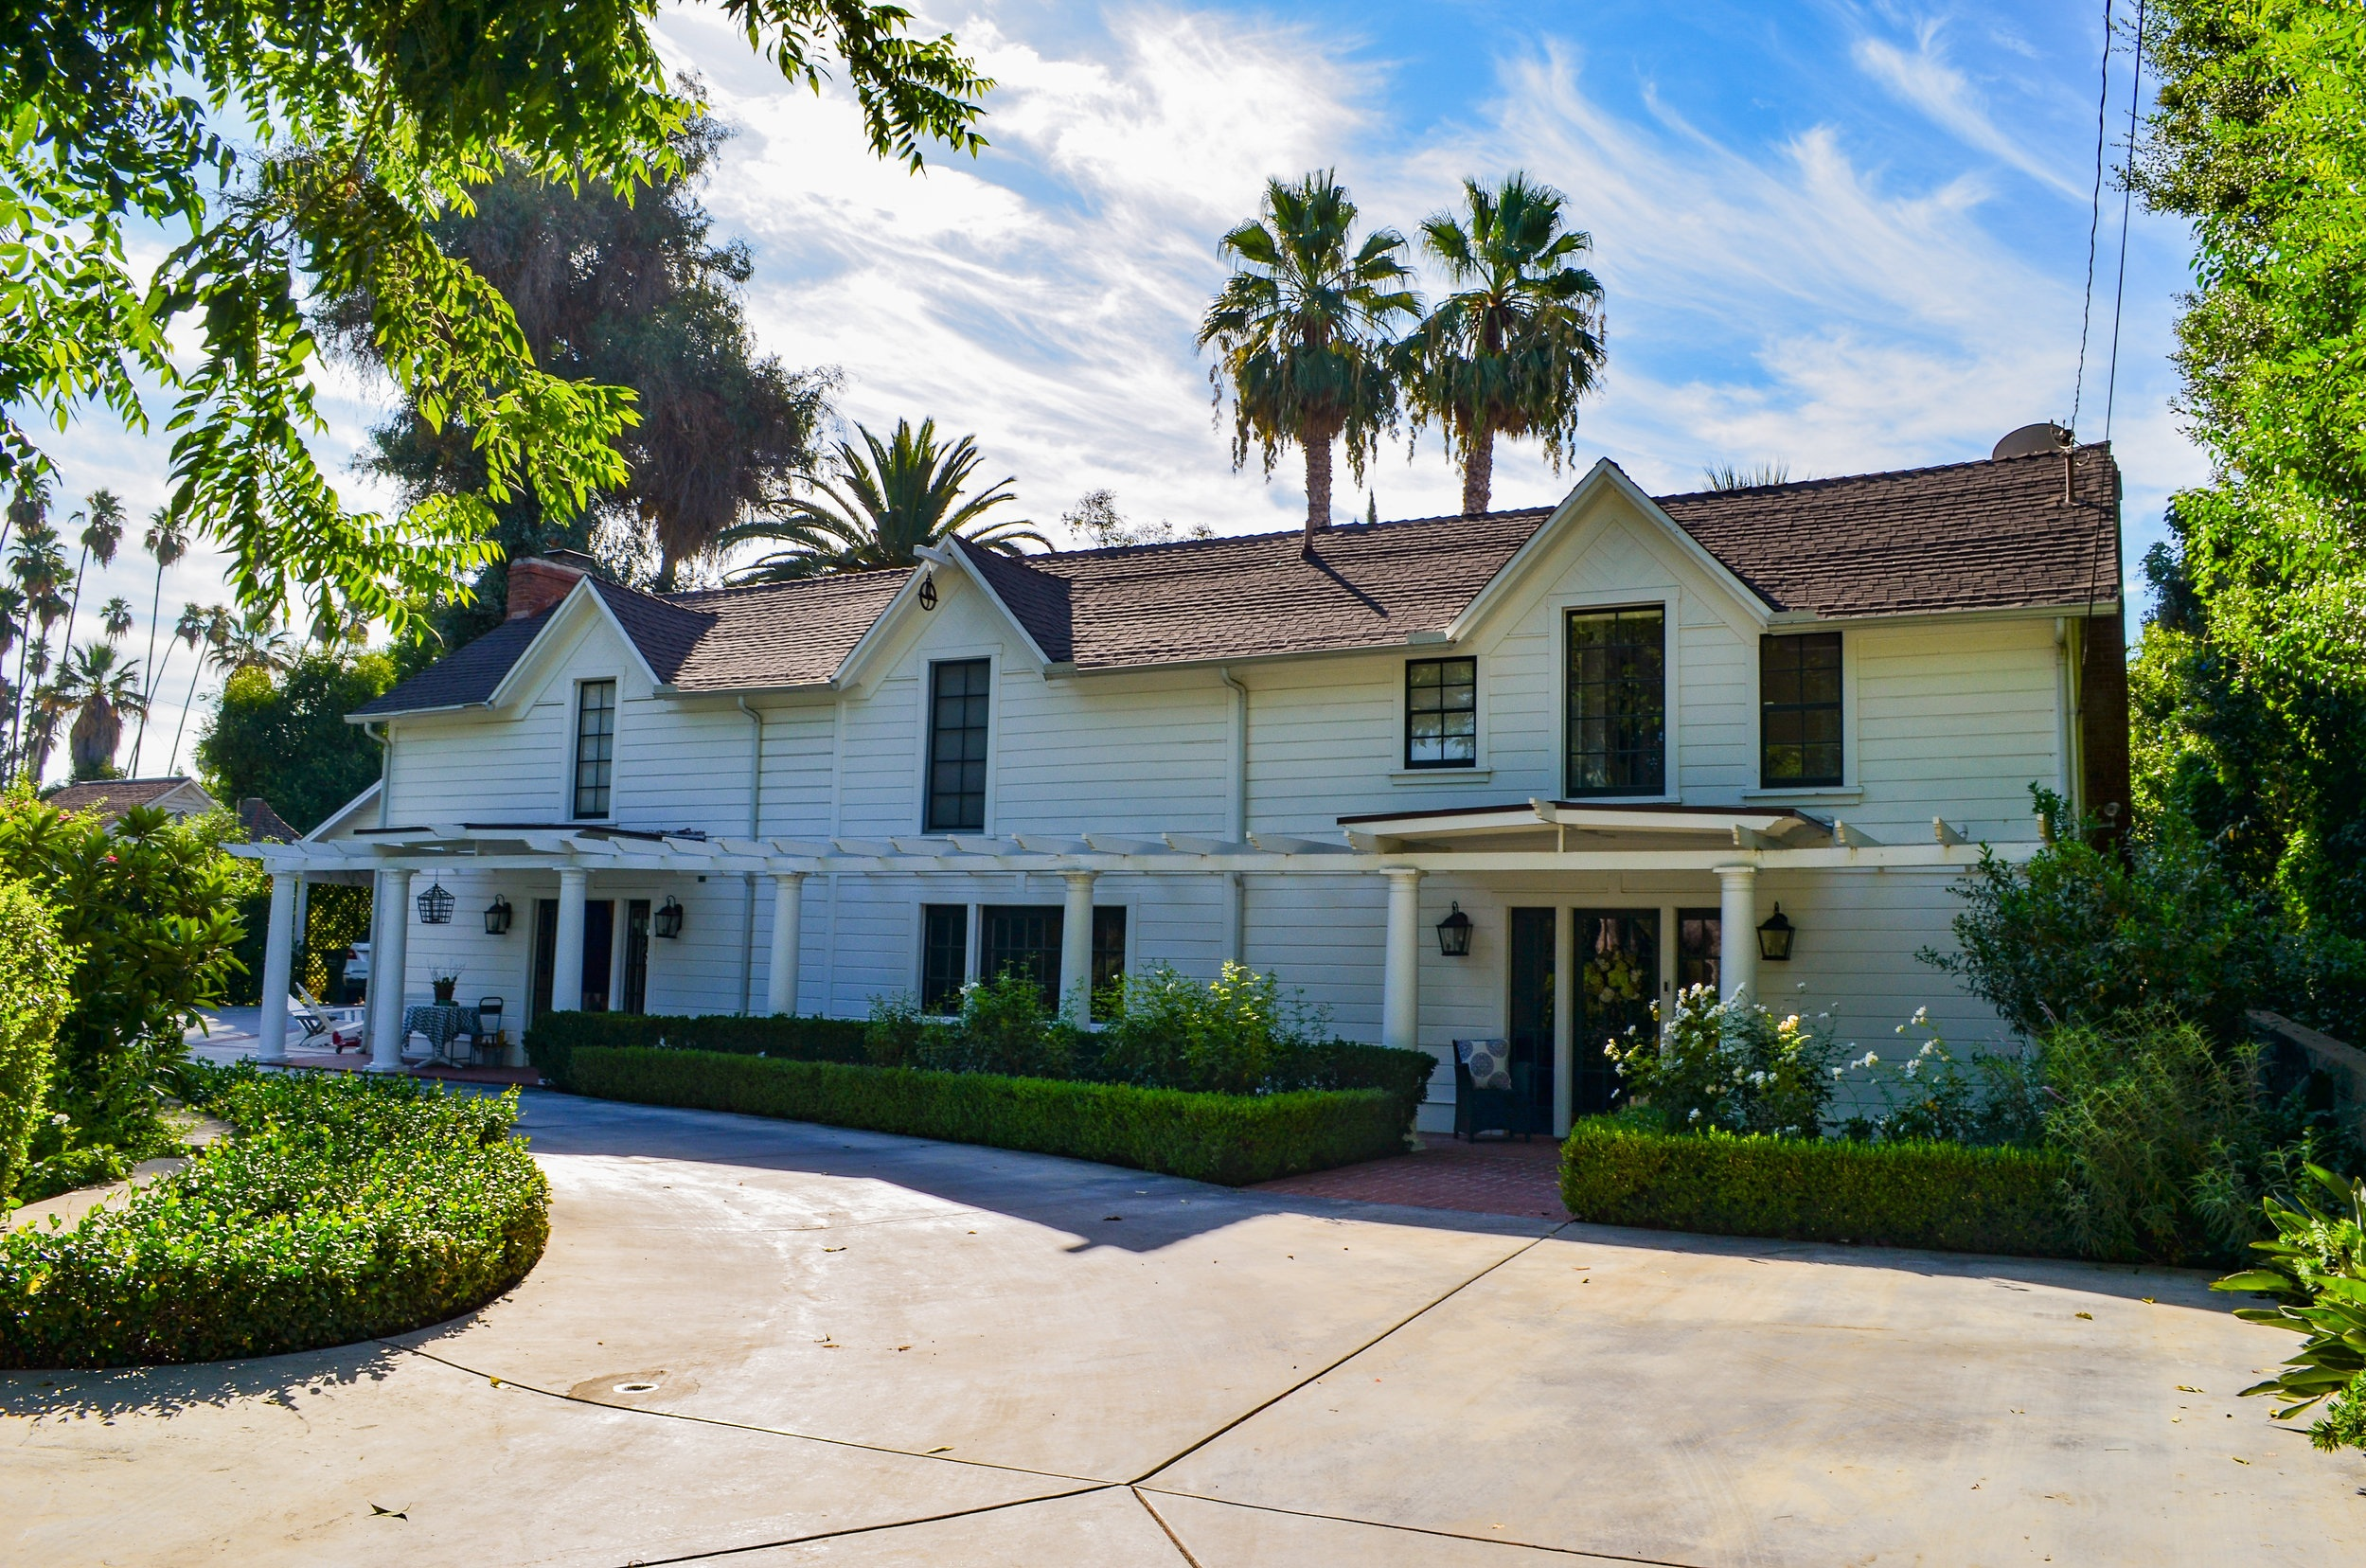 Save the Date: Our Holiday Home Tour & Boutique Weekend Returns Dec 7-8! - Join us for a Redlands Holiday Tradition! Our 52nd Holiday Home Tour will be held on Sunday Dec. 8th and our 40th Annual Boutique & Pantry will be held on Dec. 7th & 8th at the YMCA on 500 East Citrus Ave in Redlands!Visit the homes on the Home Tour from 9:30am-4:30pm. Home Tour may begin at any location anytime between hours listed above. Our Holiday Home Tour serves as a fundraiser for our Legal Aid Clinic, which provides quality legal assistance for 850+ individuals each year.Learn More